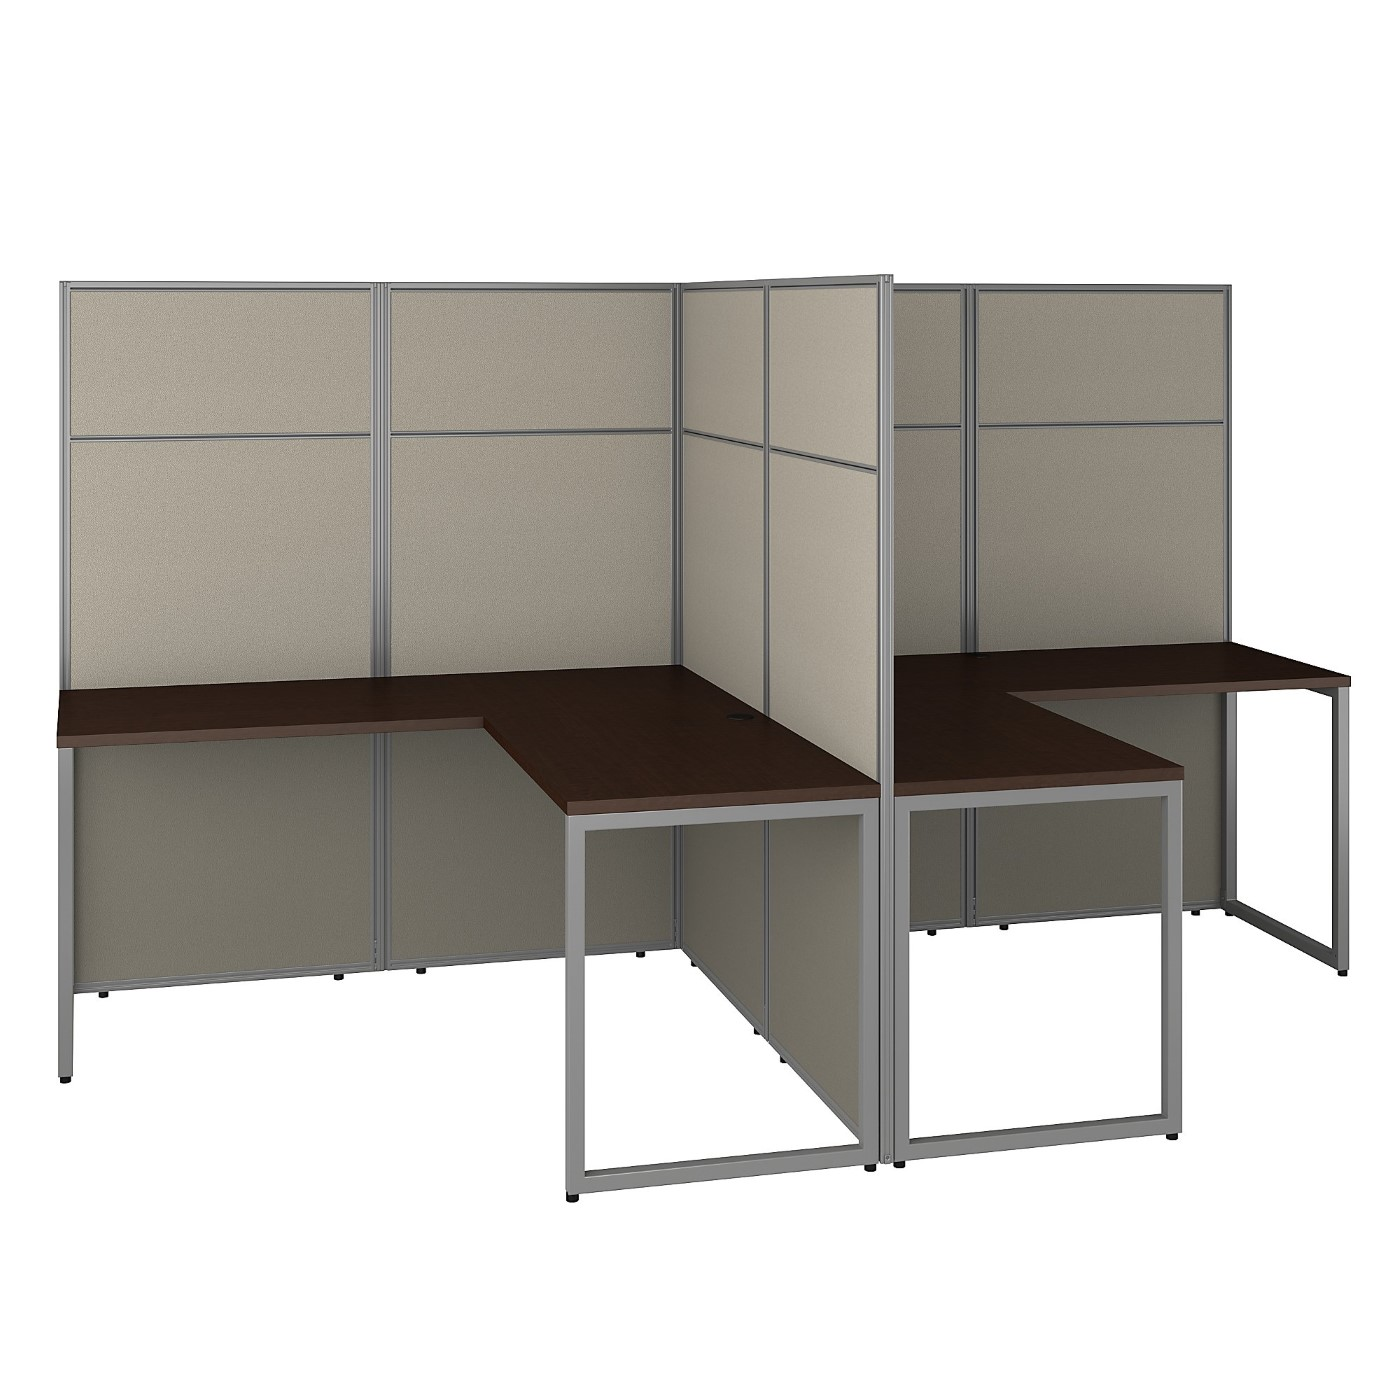 BUSH BUSINESS FURNITURE EASY OFFICE 60W 2 PERSON L SHAPED CUBICLE DESK WORKSTATION WITH 66H PANELS. FREE SHIPPING 30H x 72L x 72W.  SALE DEDUCT 10% MORE ENTER '10percent' IN COUPON CODE BOX WHILE CHECKING OUT. ENDS 5-31-20.